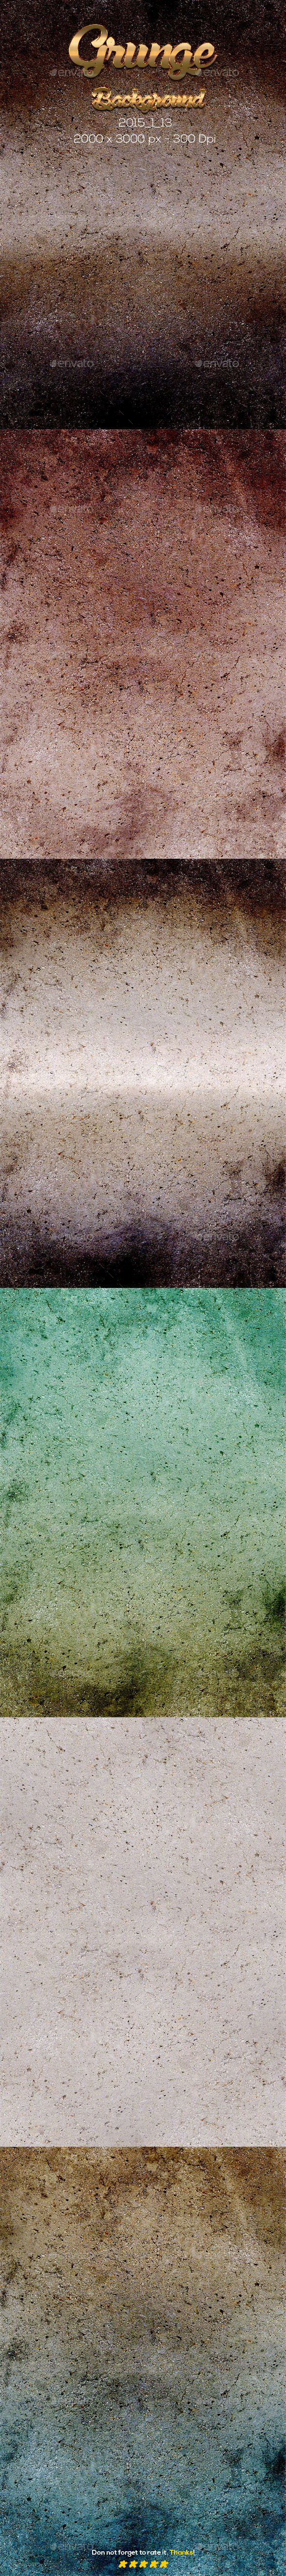 6 Grunge Texture - Backgrounds Graphics